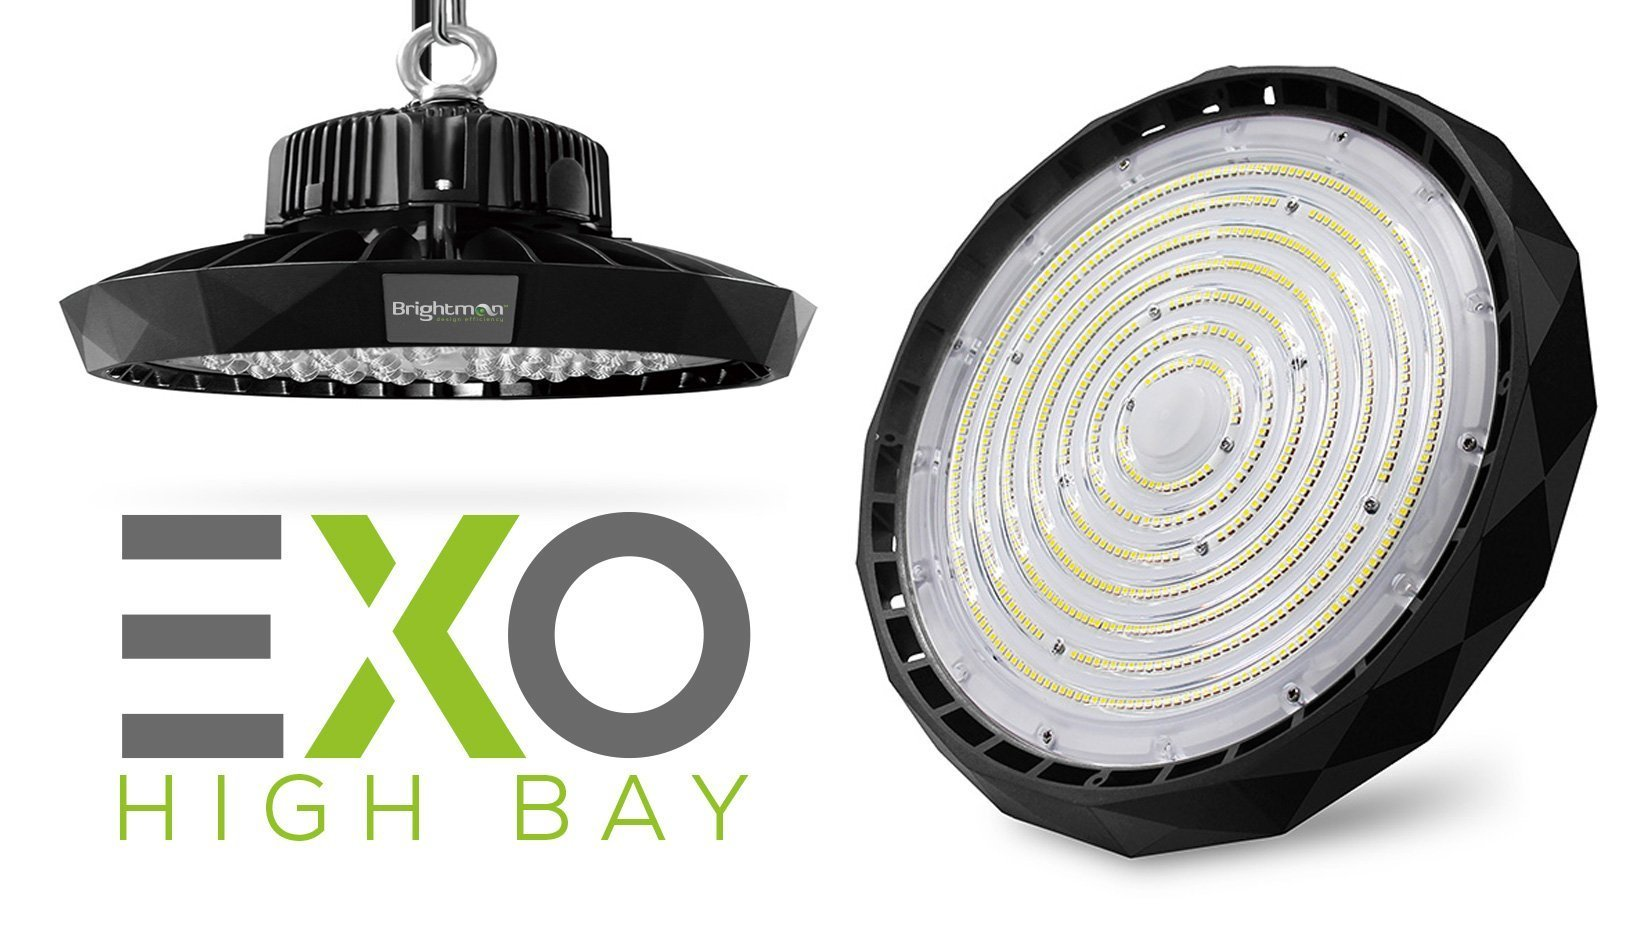 EXO LED High Bay